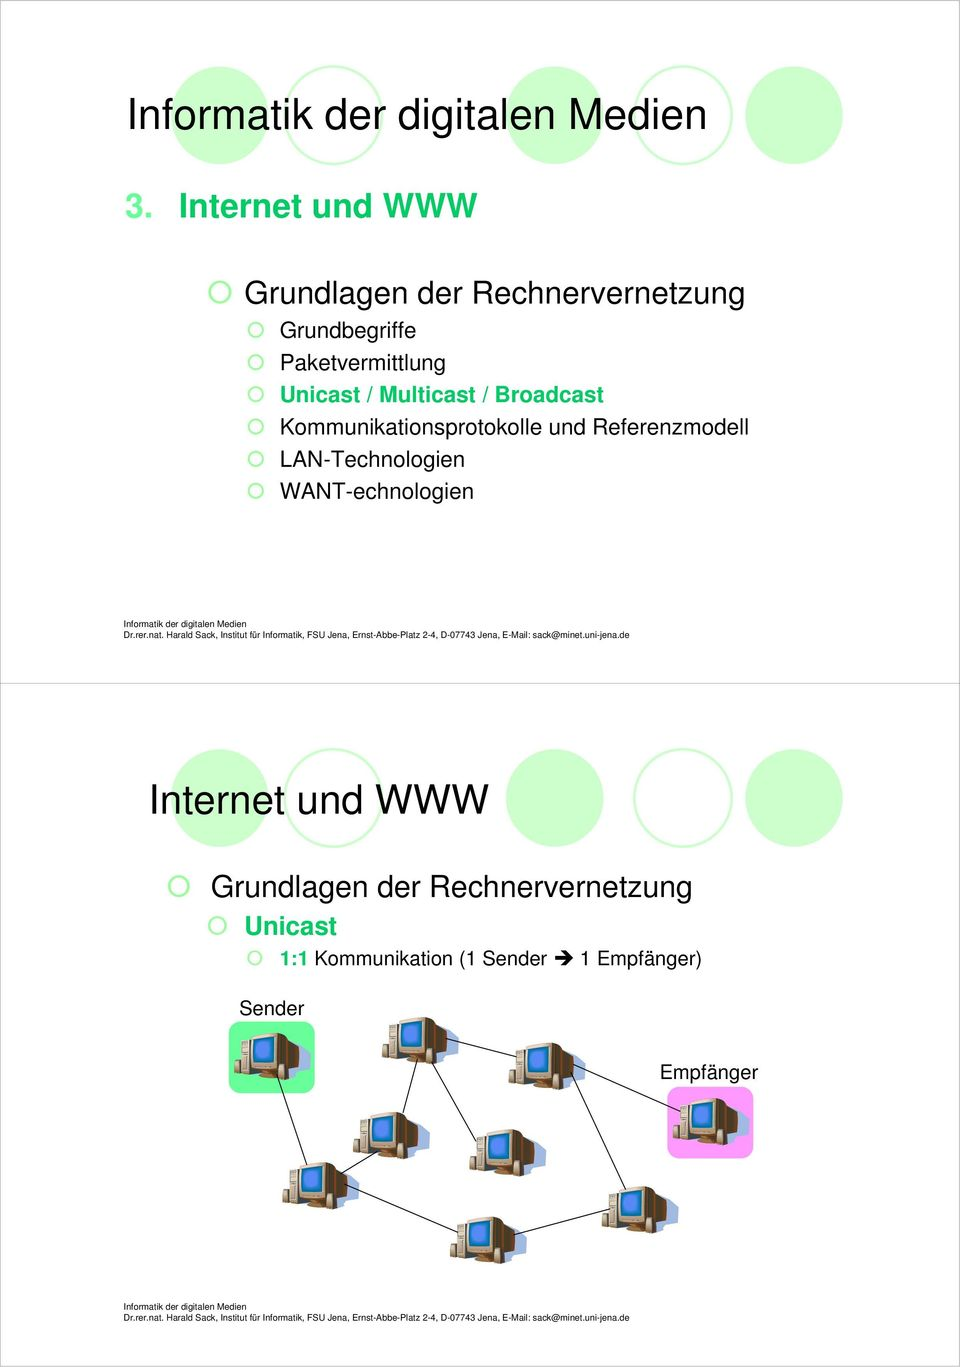 Referenzmodell LAN-Technologien WANT-echnologien